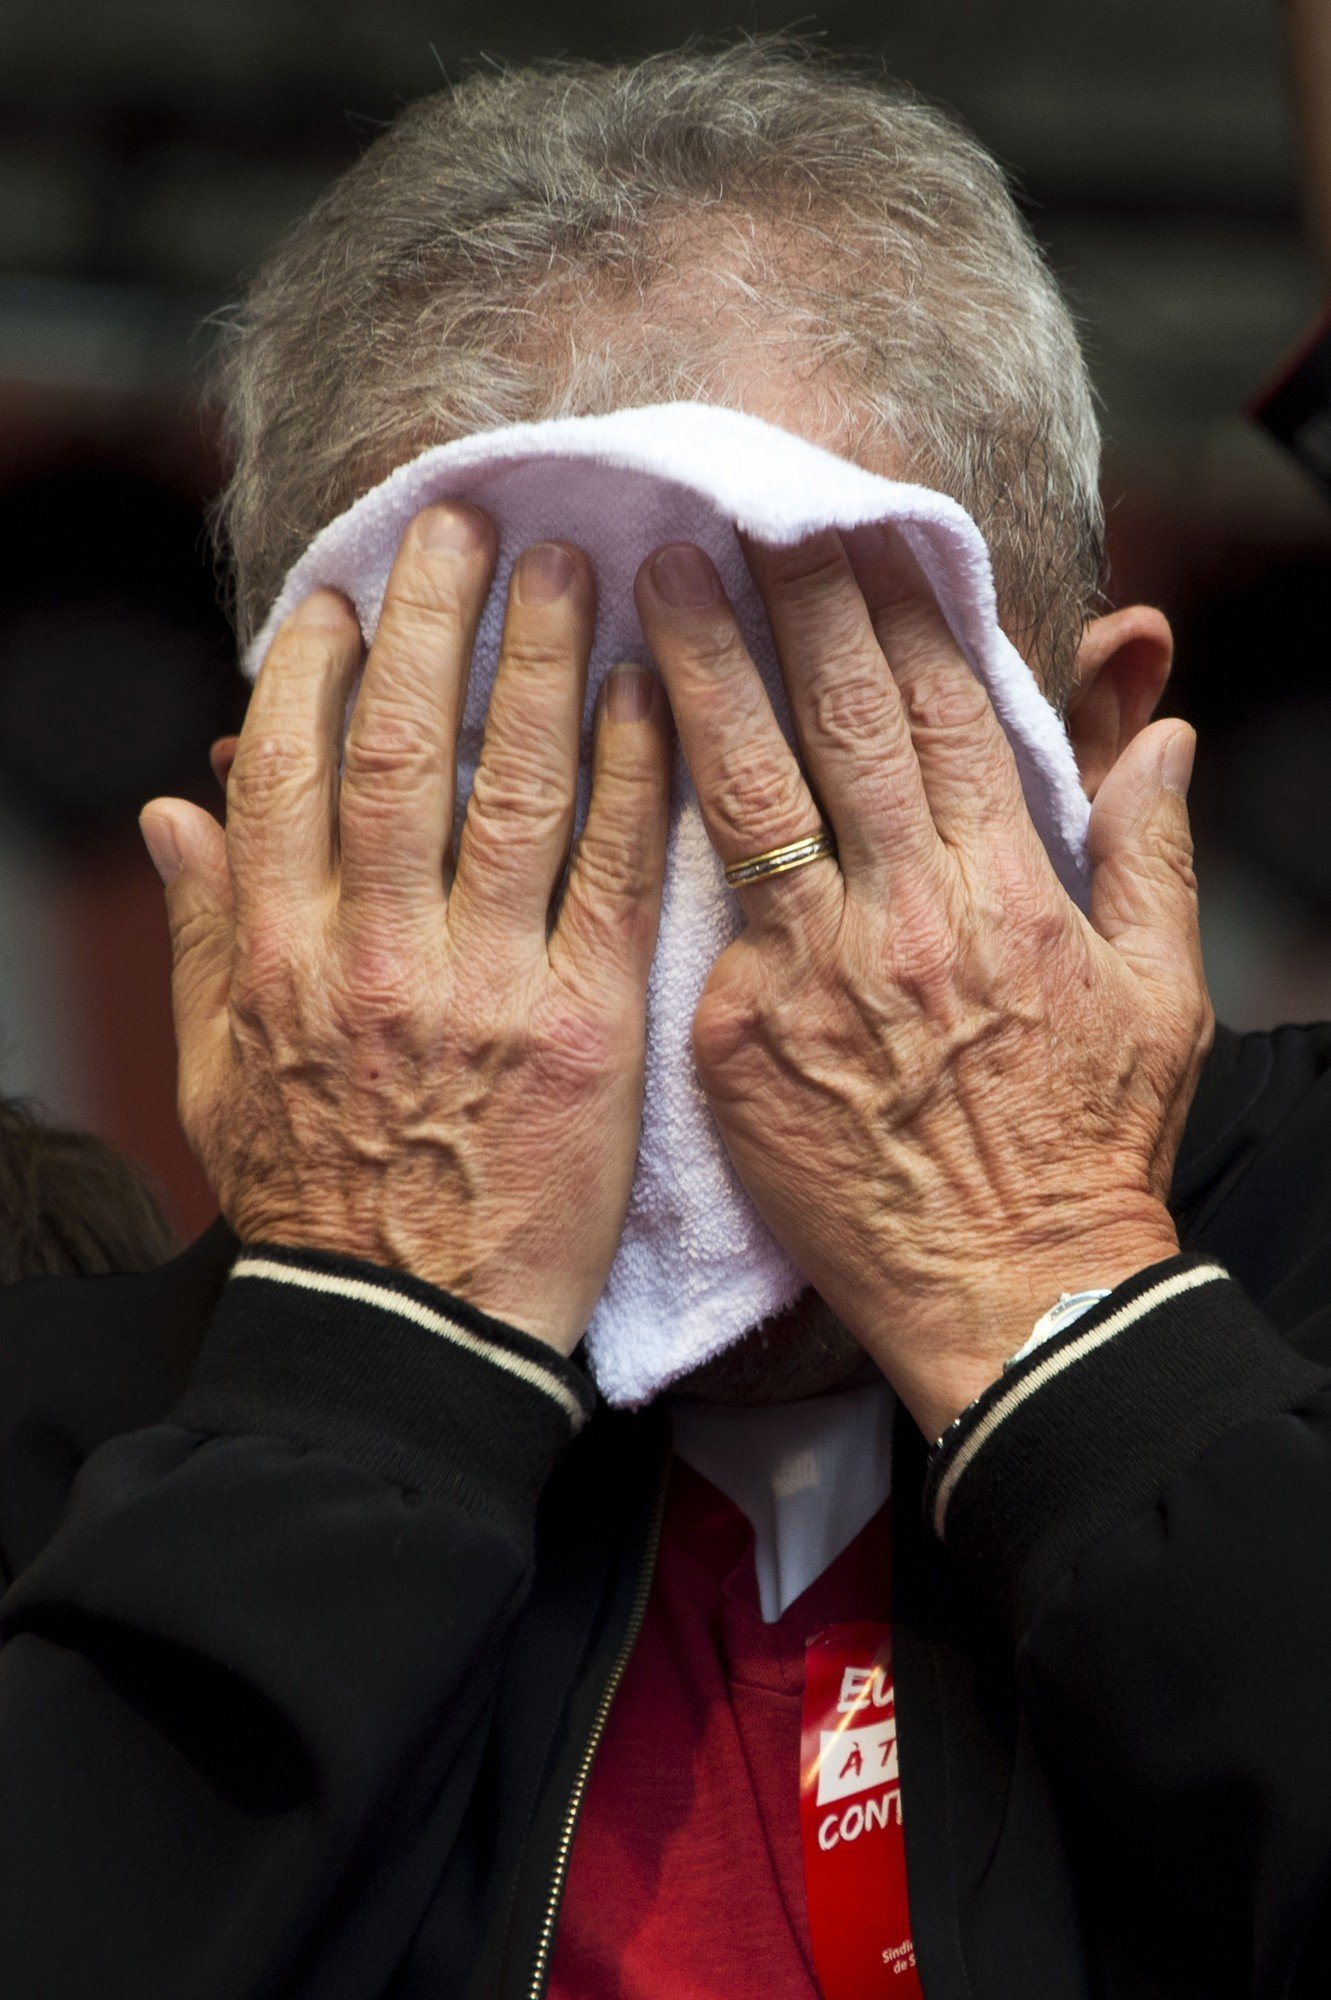 Former Brazilian President Luiz Inacio Lula da Silva wipes his face as he participates in the May Day celebrations in Sao Paulo, Brazil, on May 1, 2015. AFP PHOTO / Nelson ALMEIDA (Photo credit should read NELSON ALMEIDA/AFP/Getty Images)